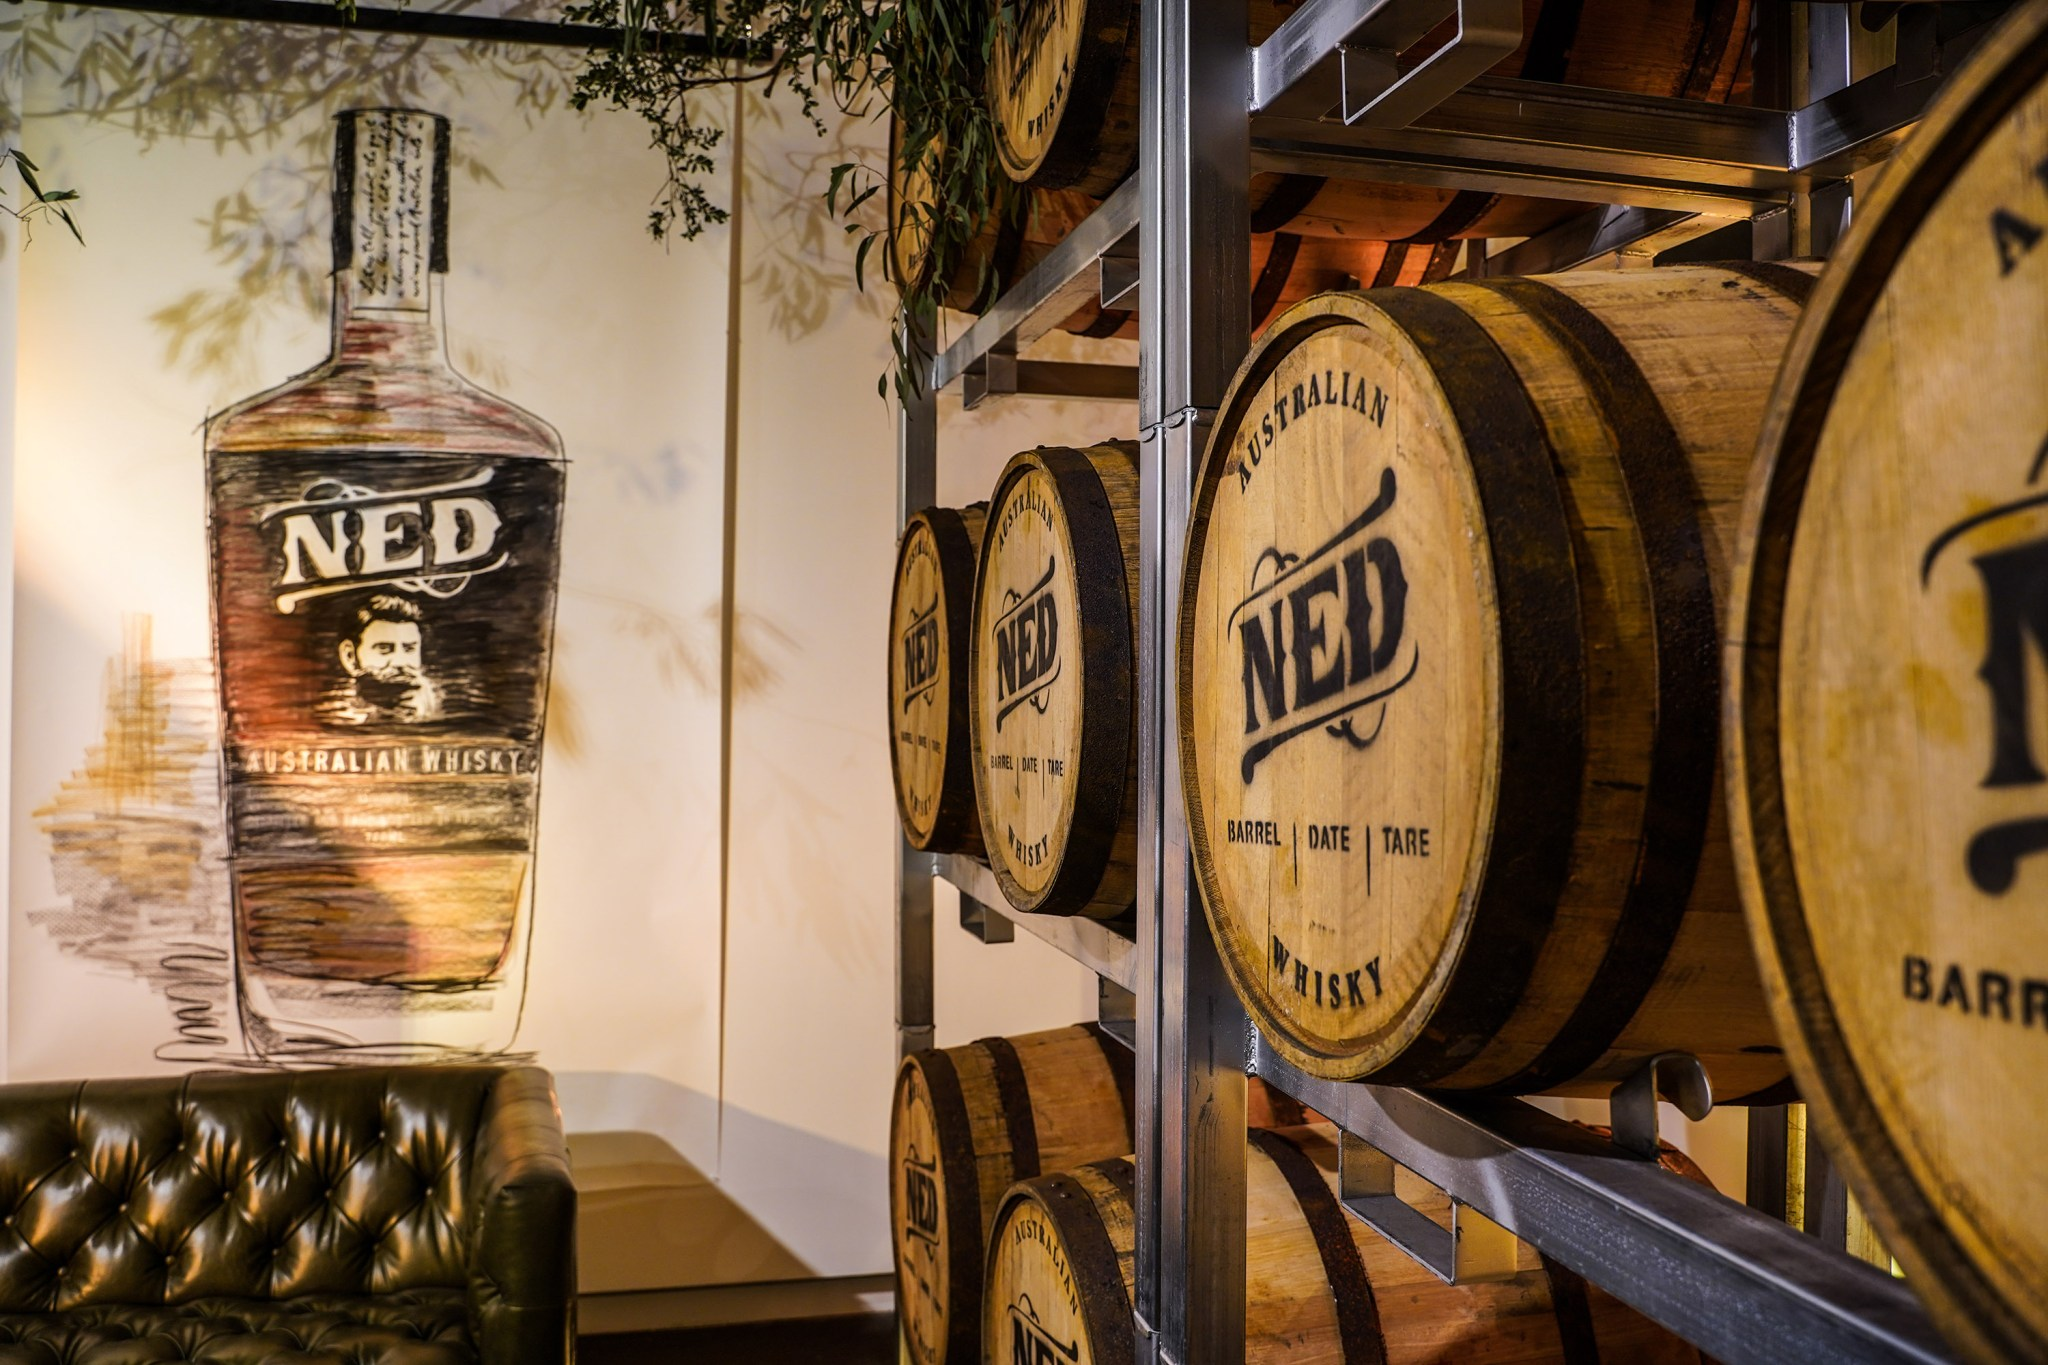 NED Whisky Barrel